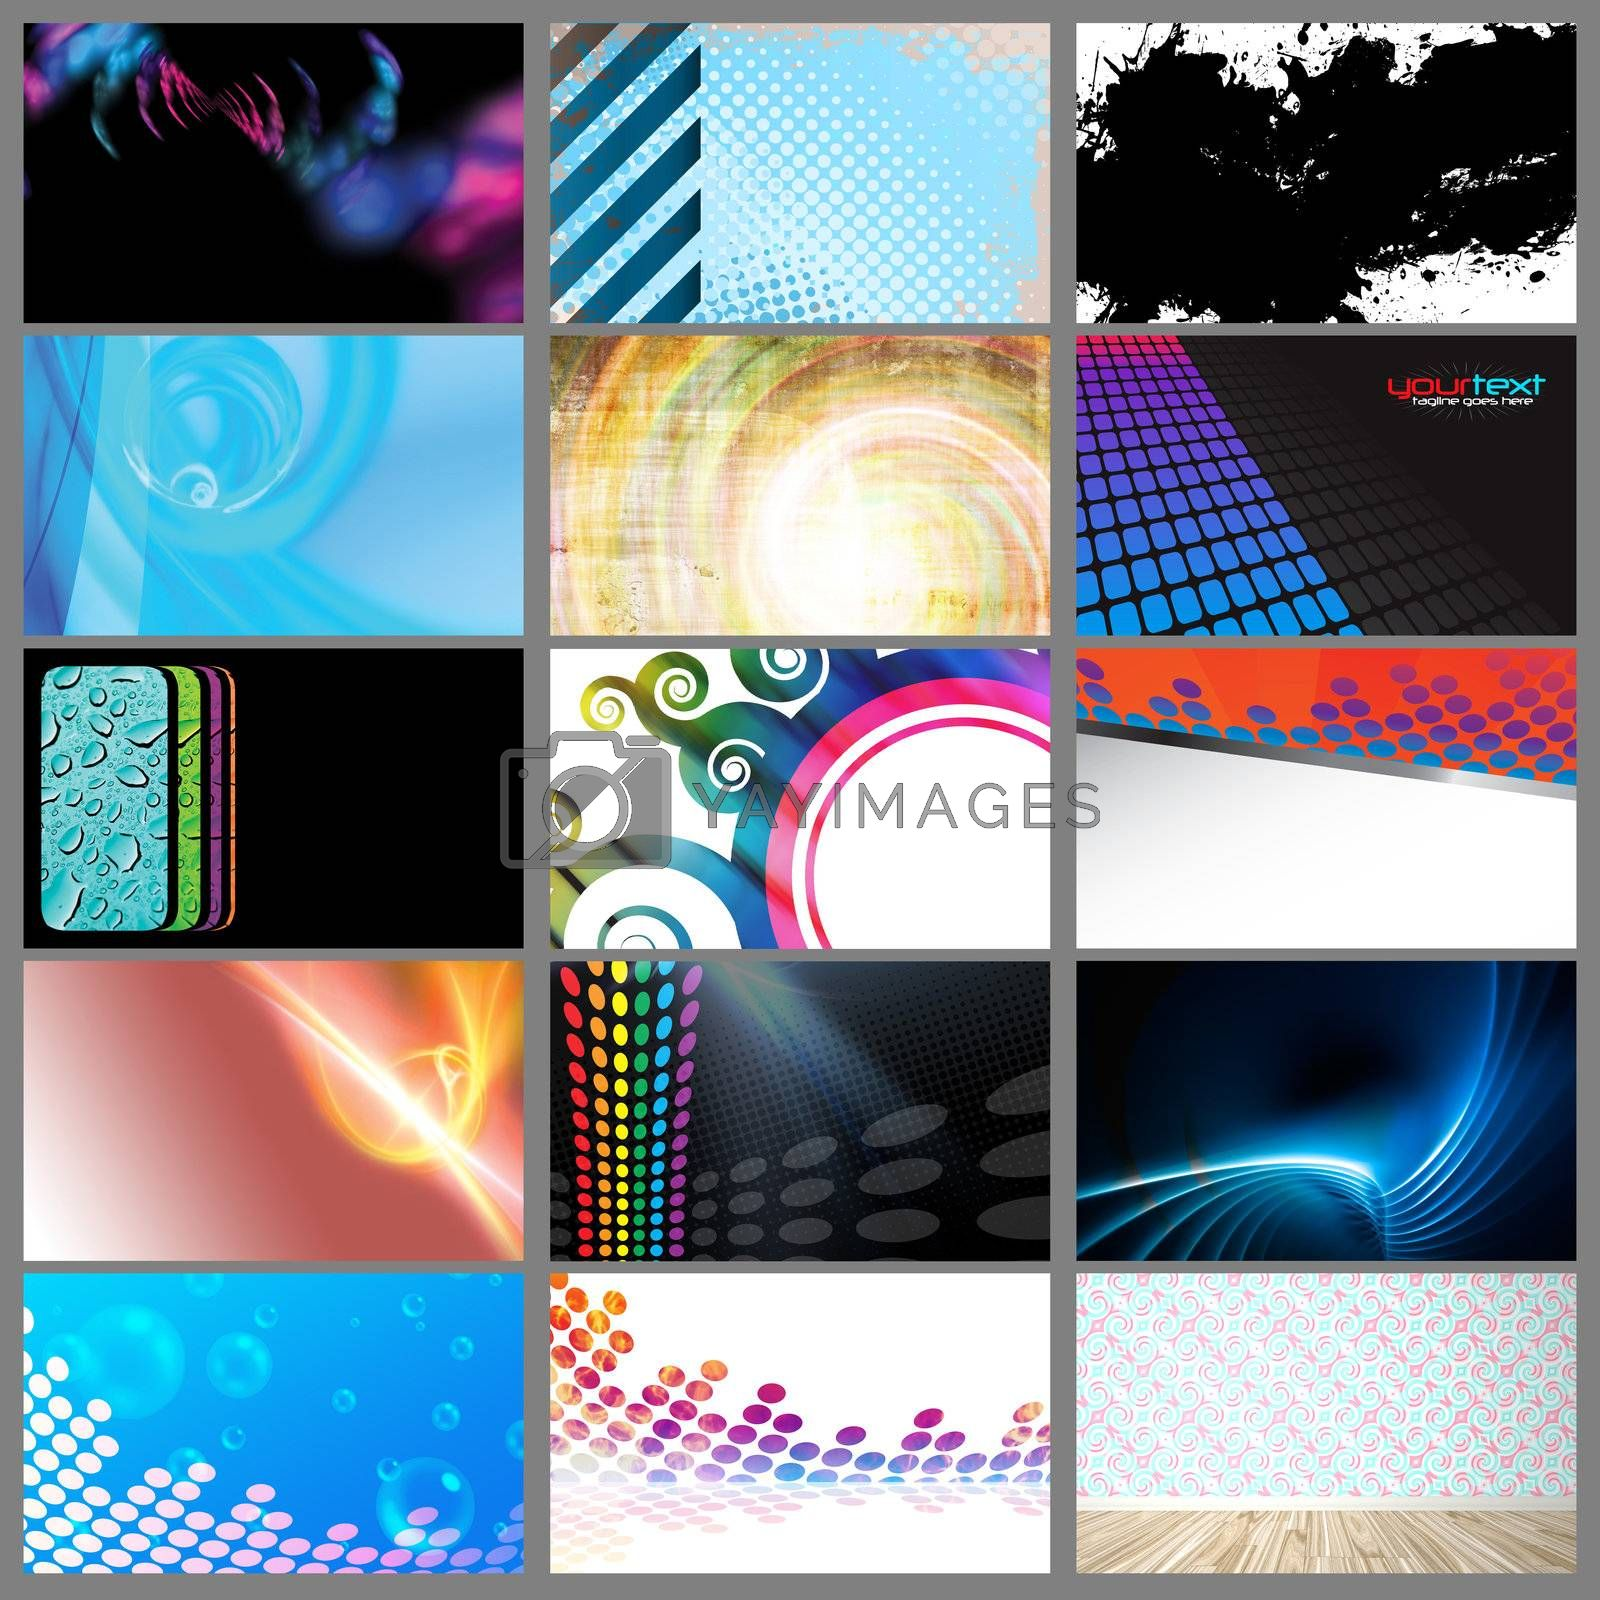 Assortment of 15 horizontal modern business card templates that are print ready and fully customizable. Easily add your text and logo. These include .25 inch bleed and trim to standard size.